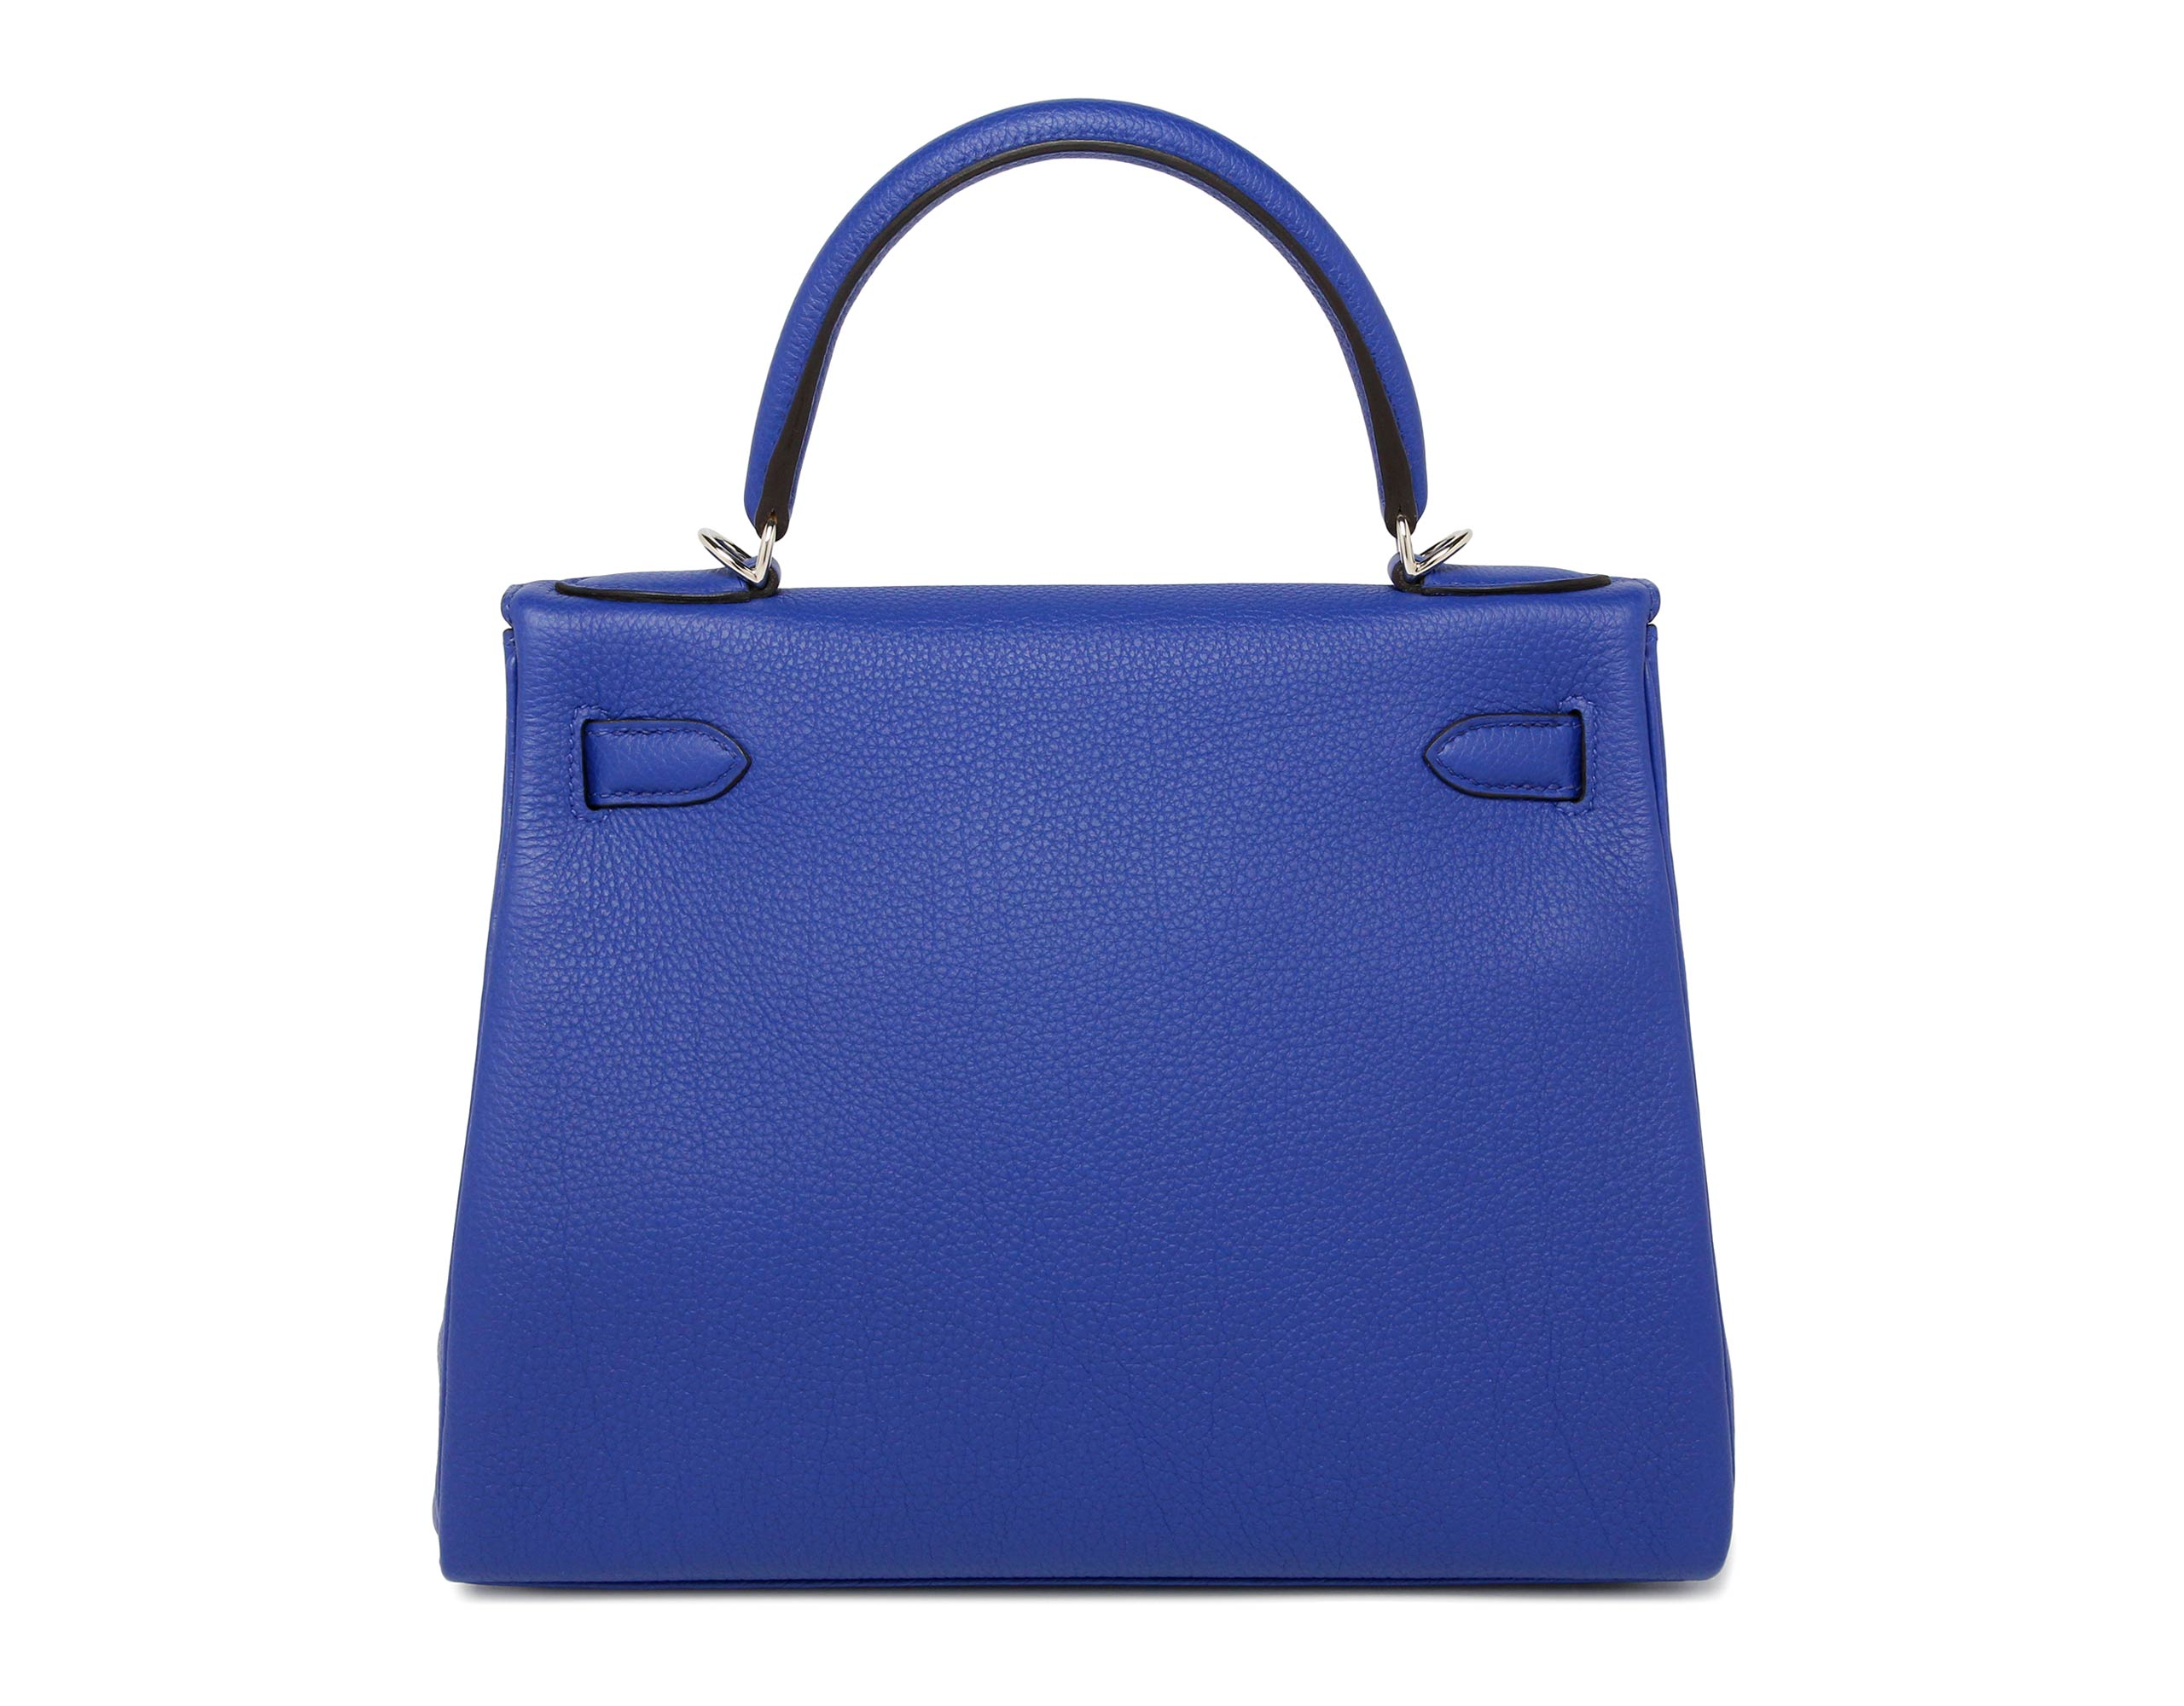 Hermes Kelly Blue Electric Togo with Palladium